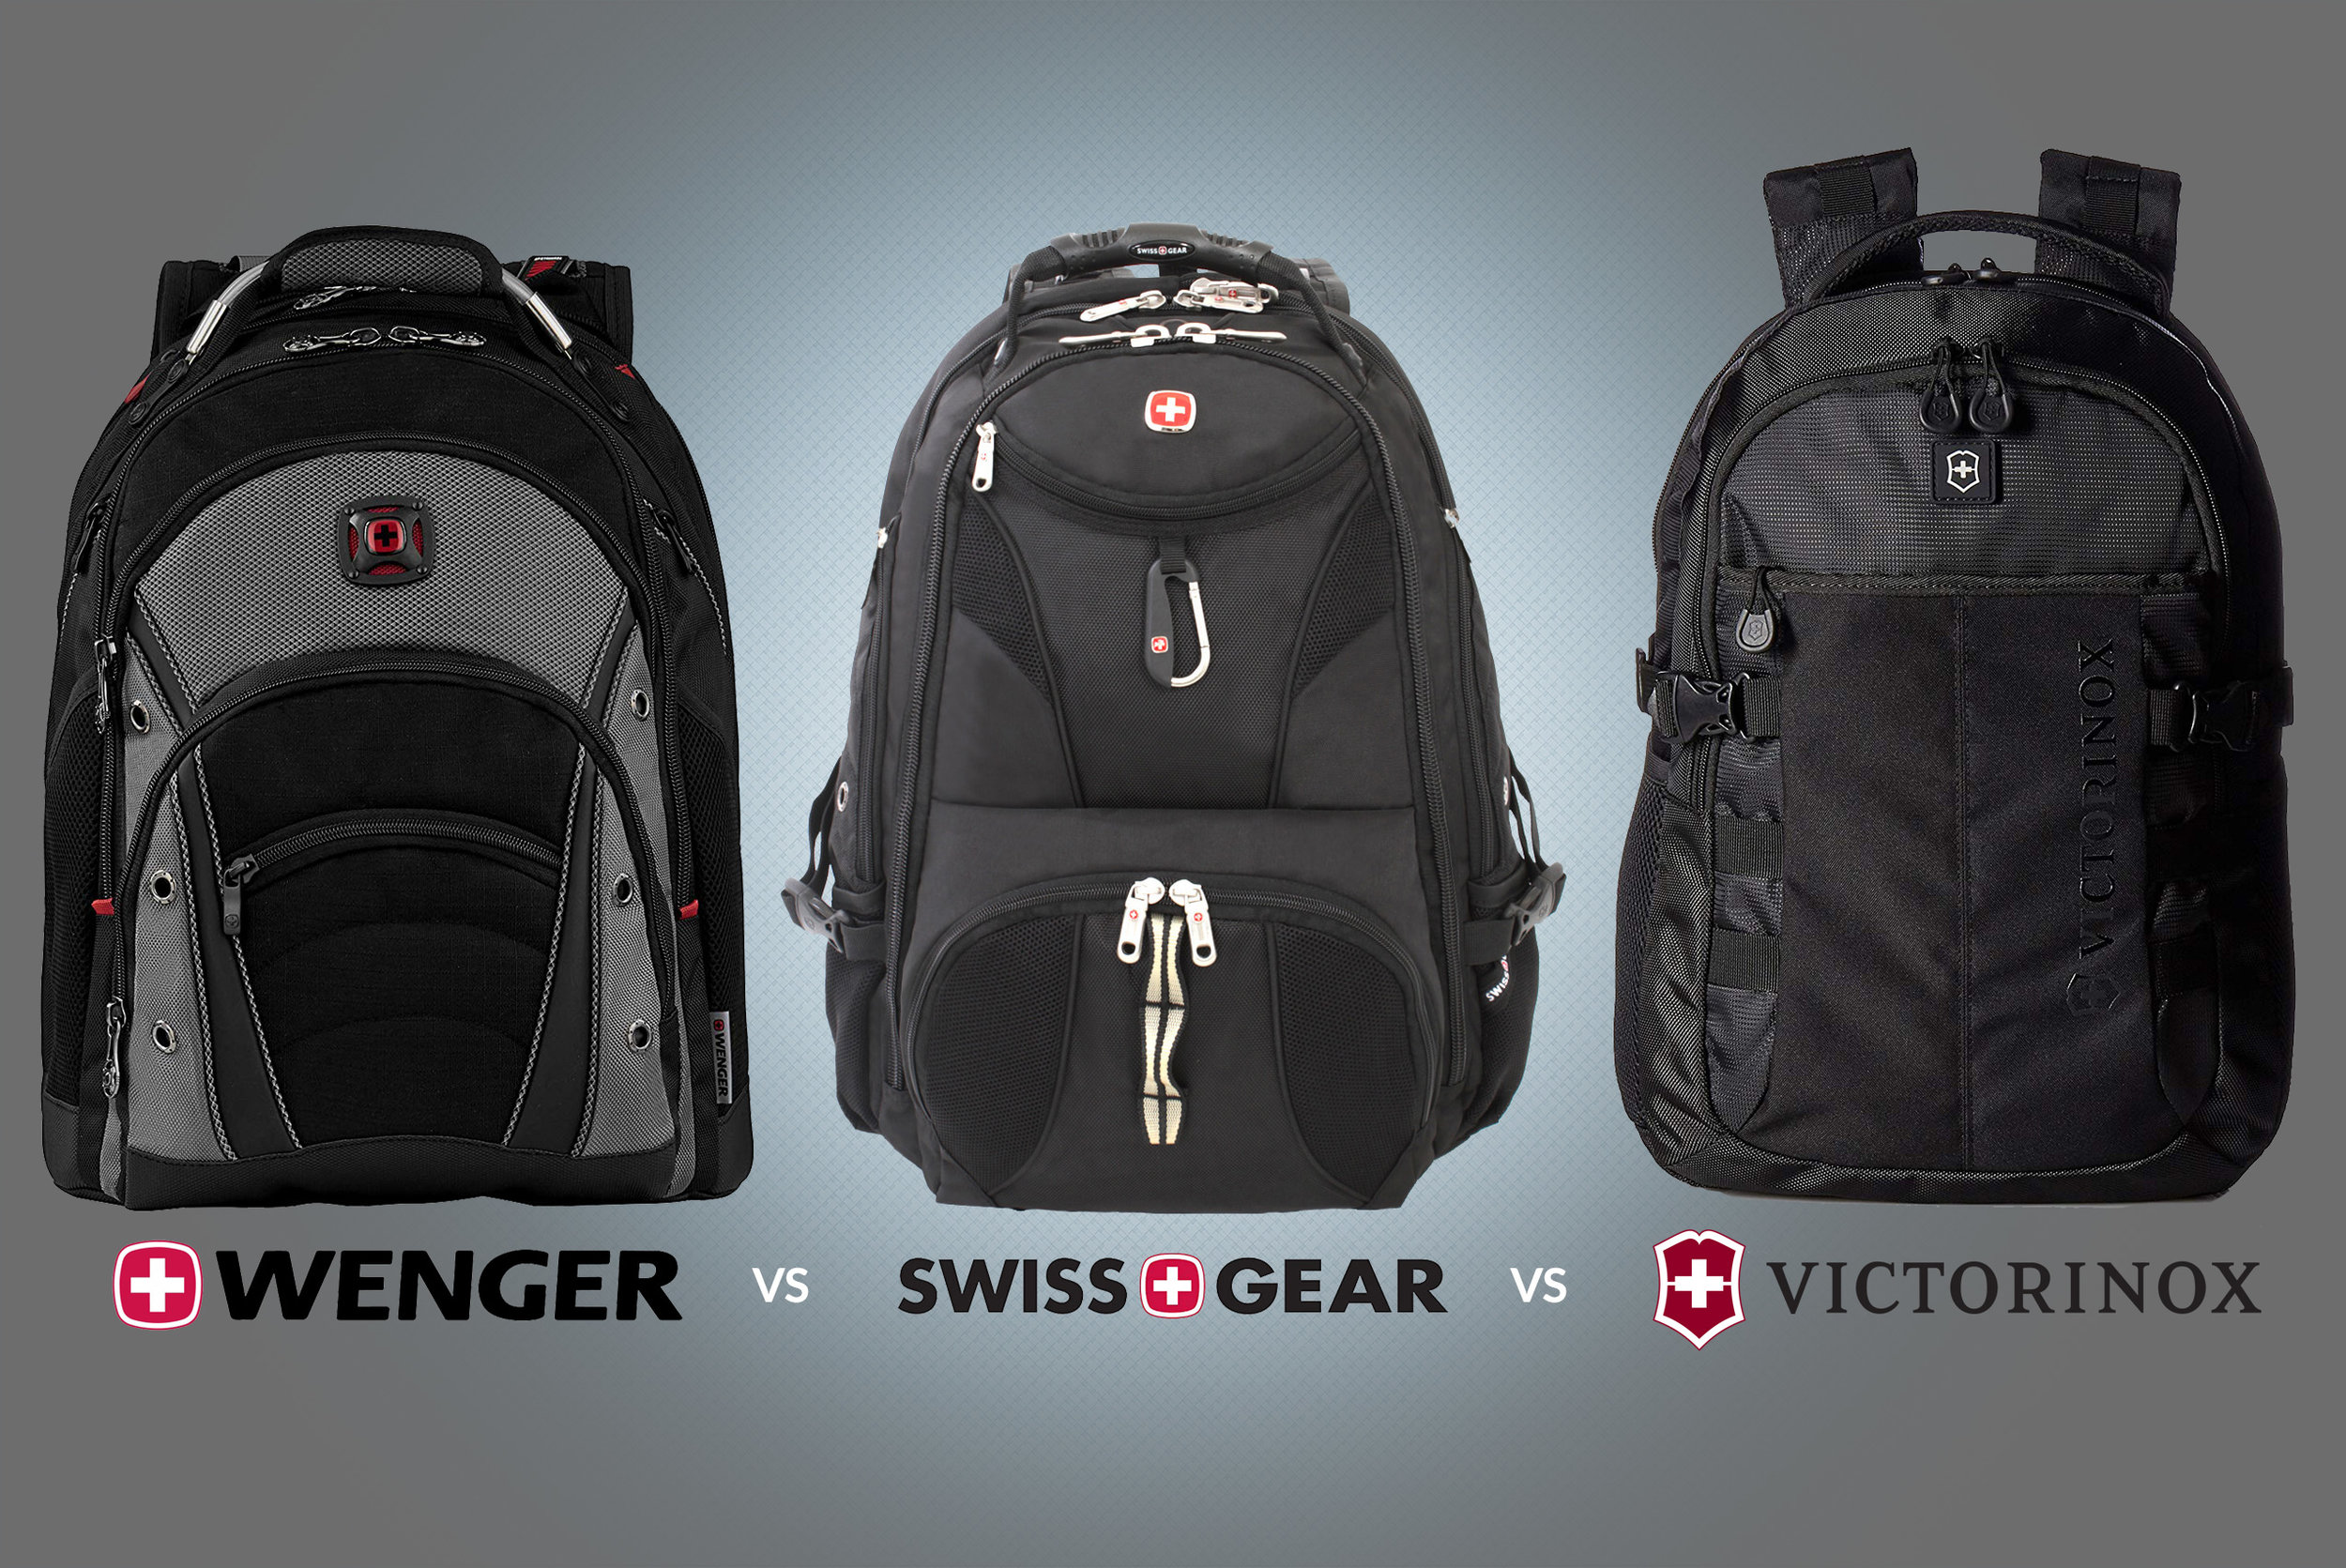 c671a75f85cbc Wenger vs Victorinox vs Swiss Gear - What s the difference ...